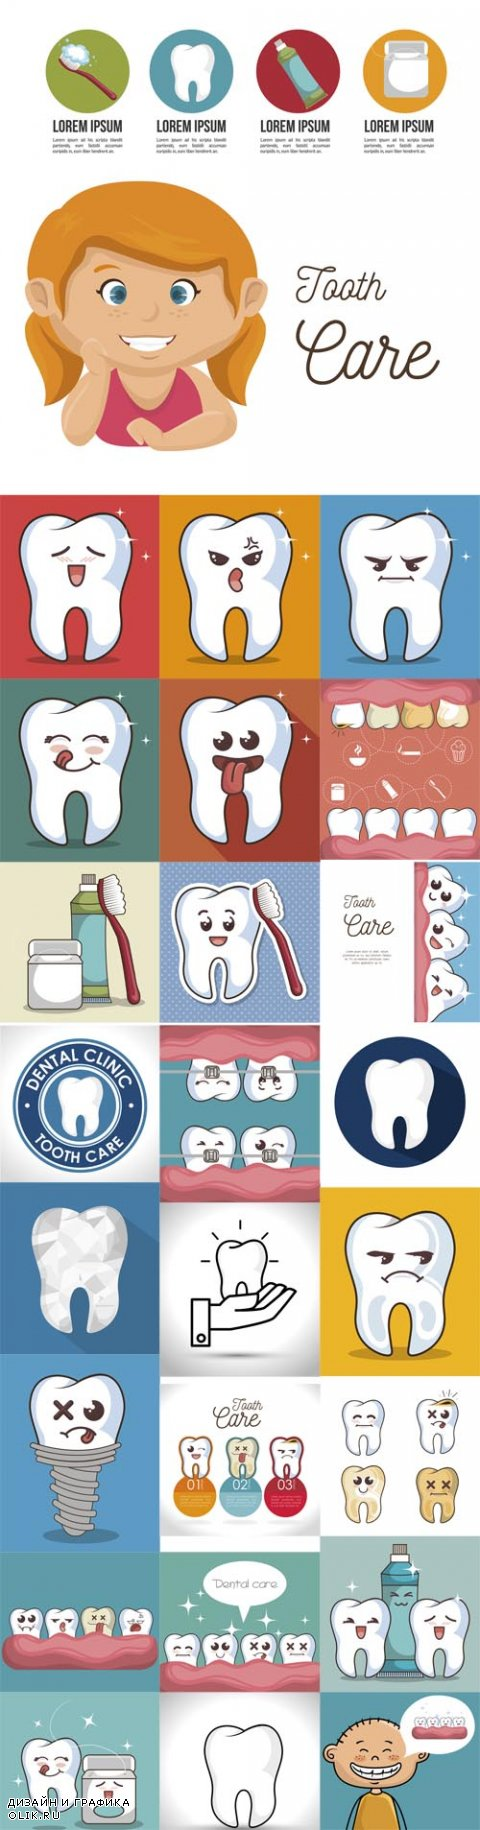 Vector Human Tooth Character Icon Illustration Graphic